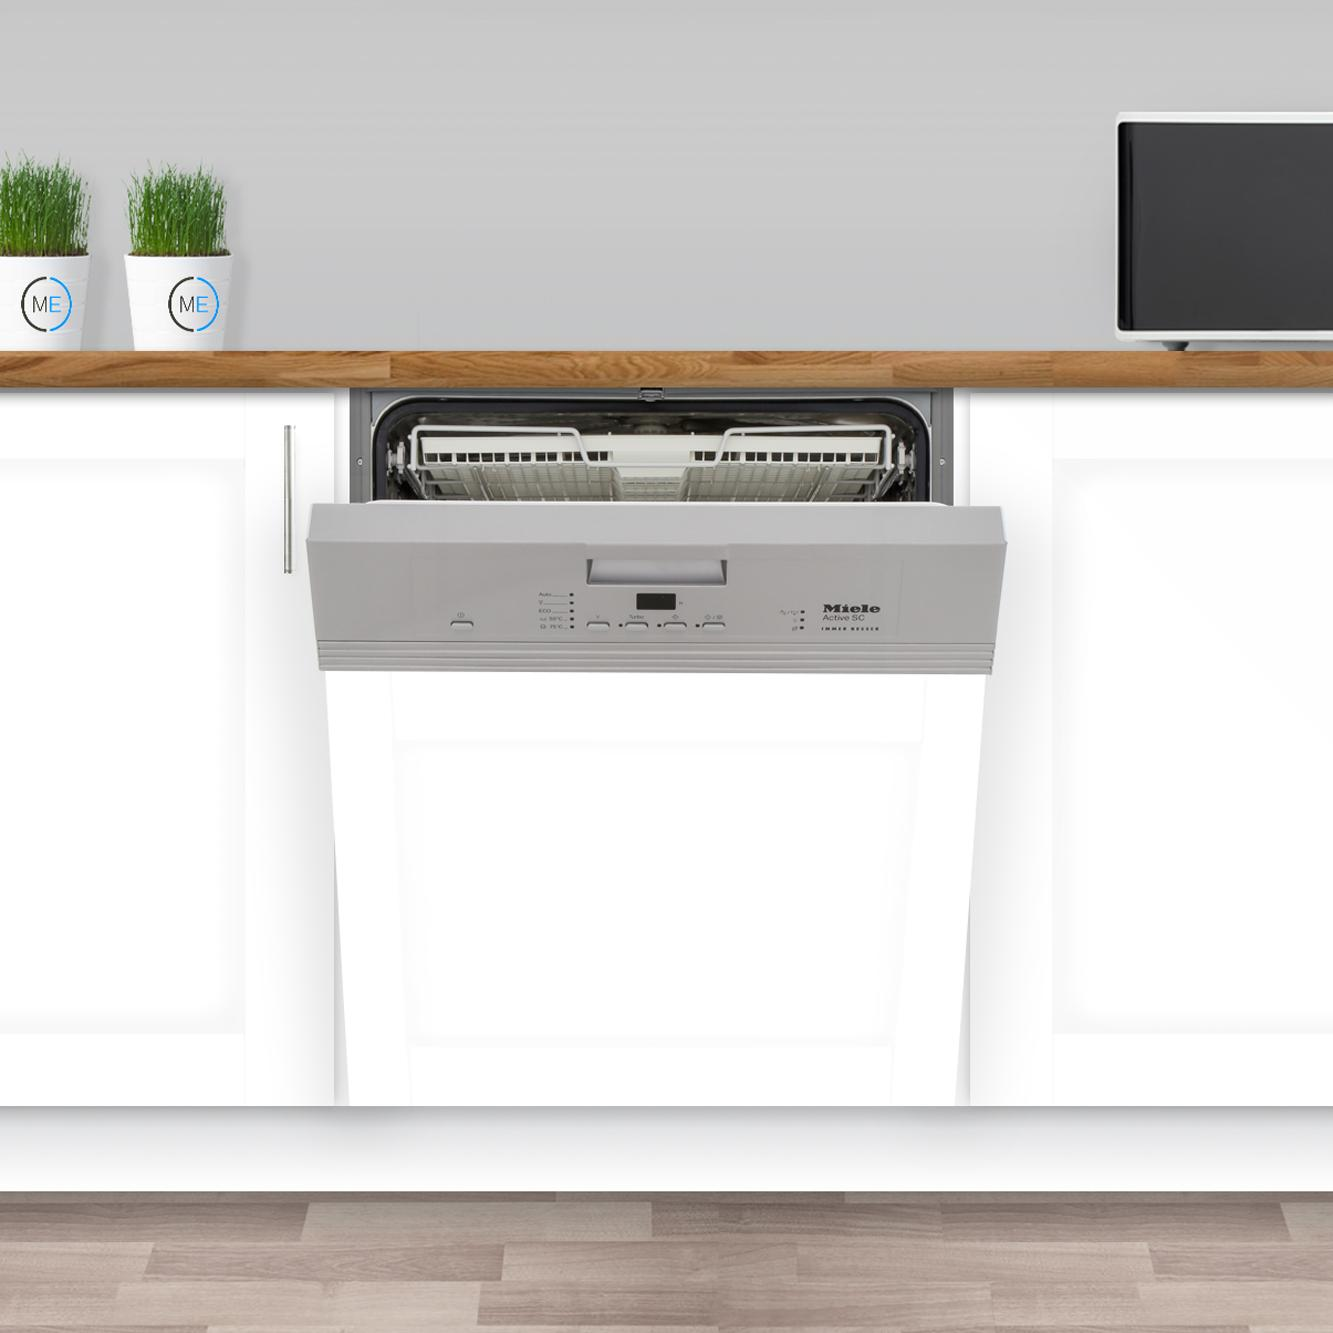 Buy Miele G4203sci Cleansteel Built In Semi Integrated